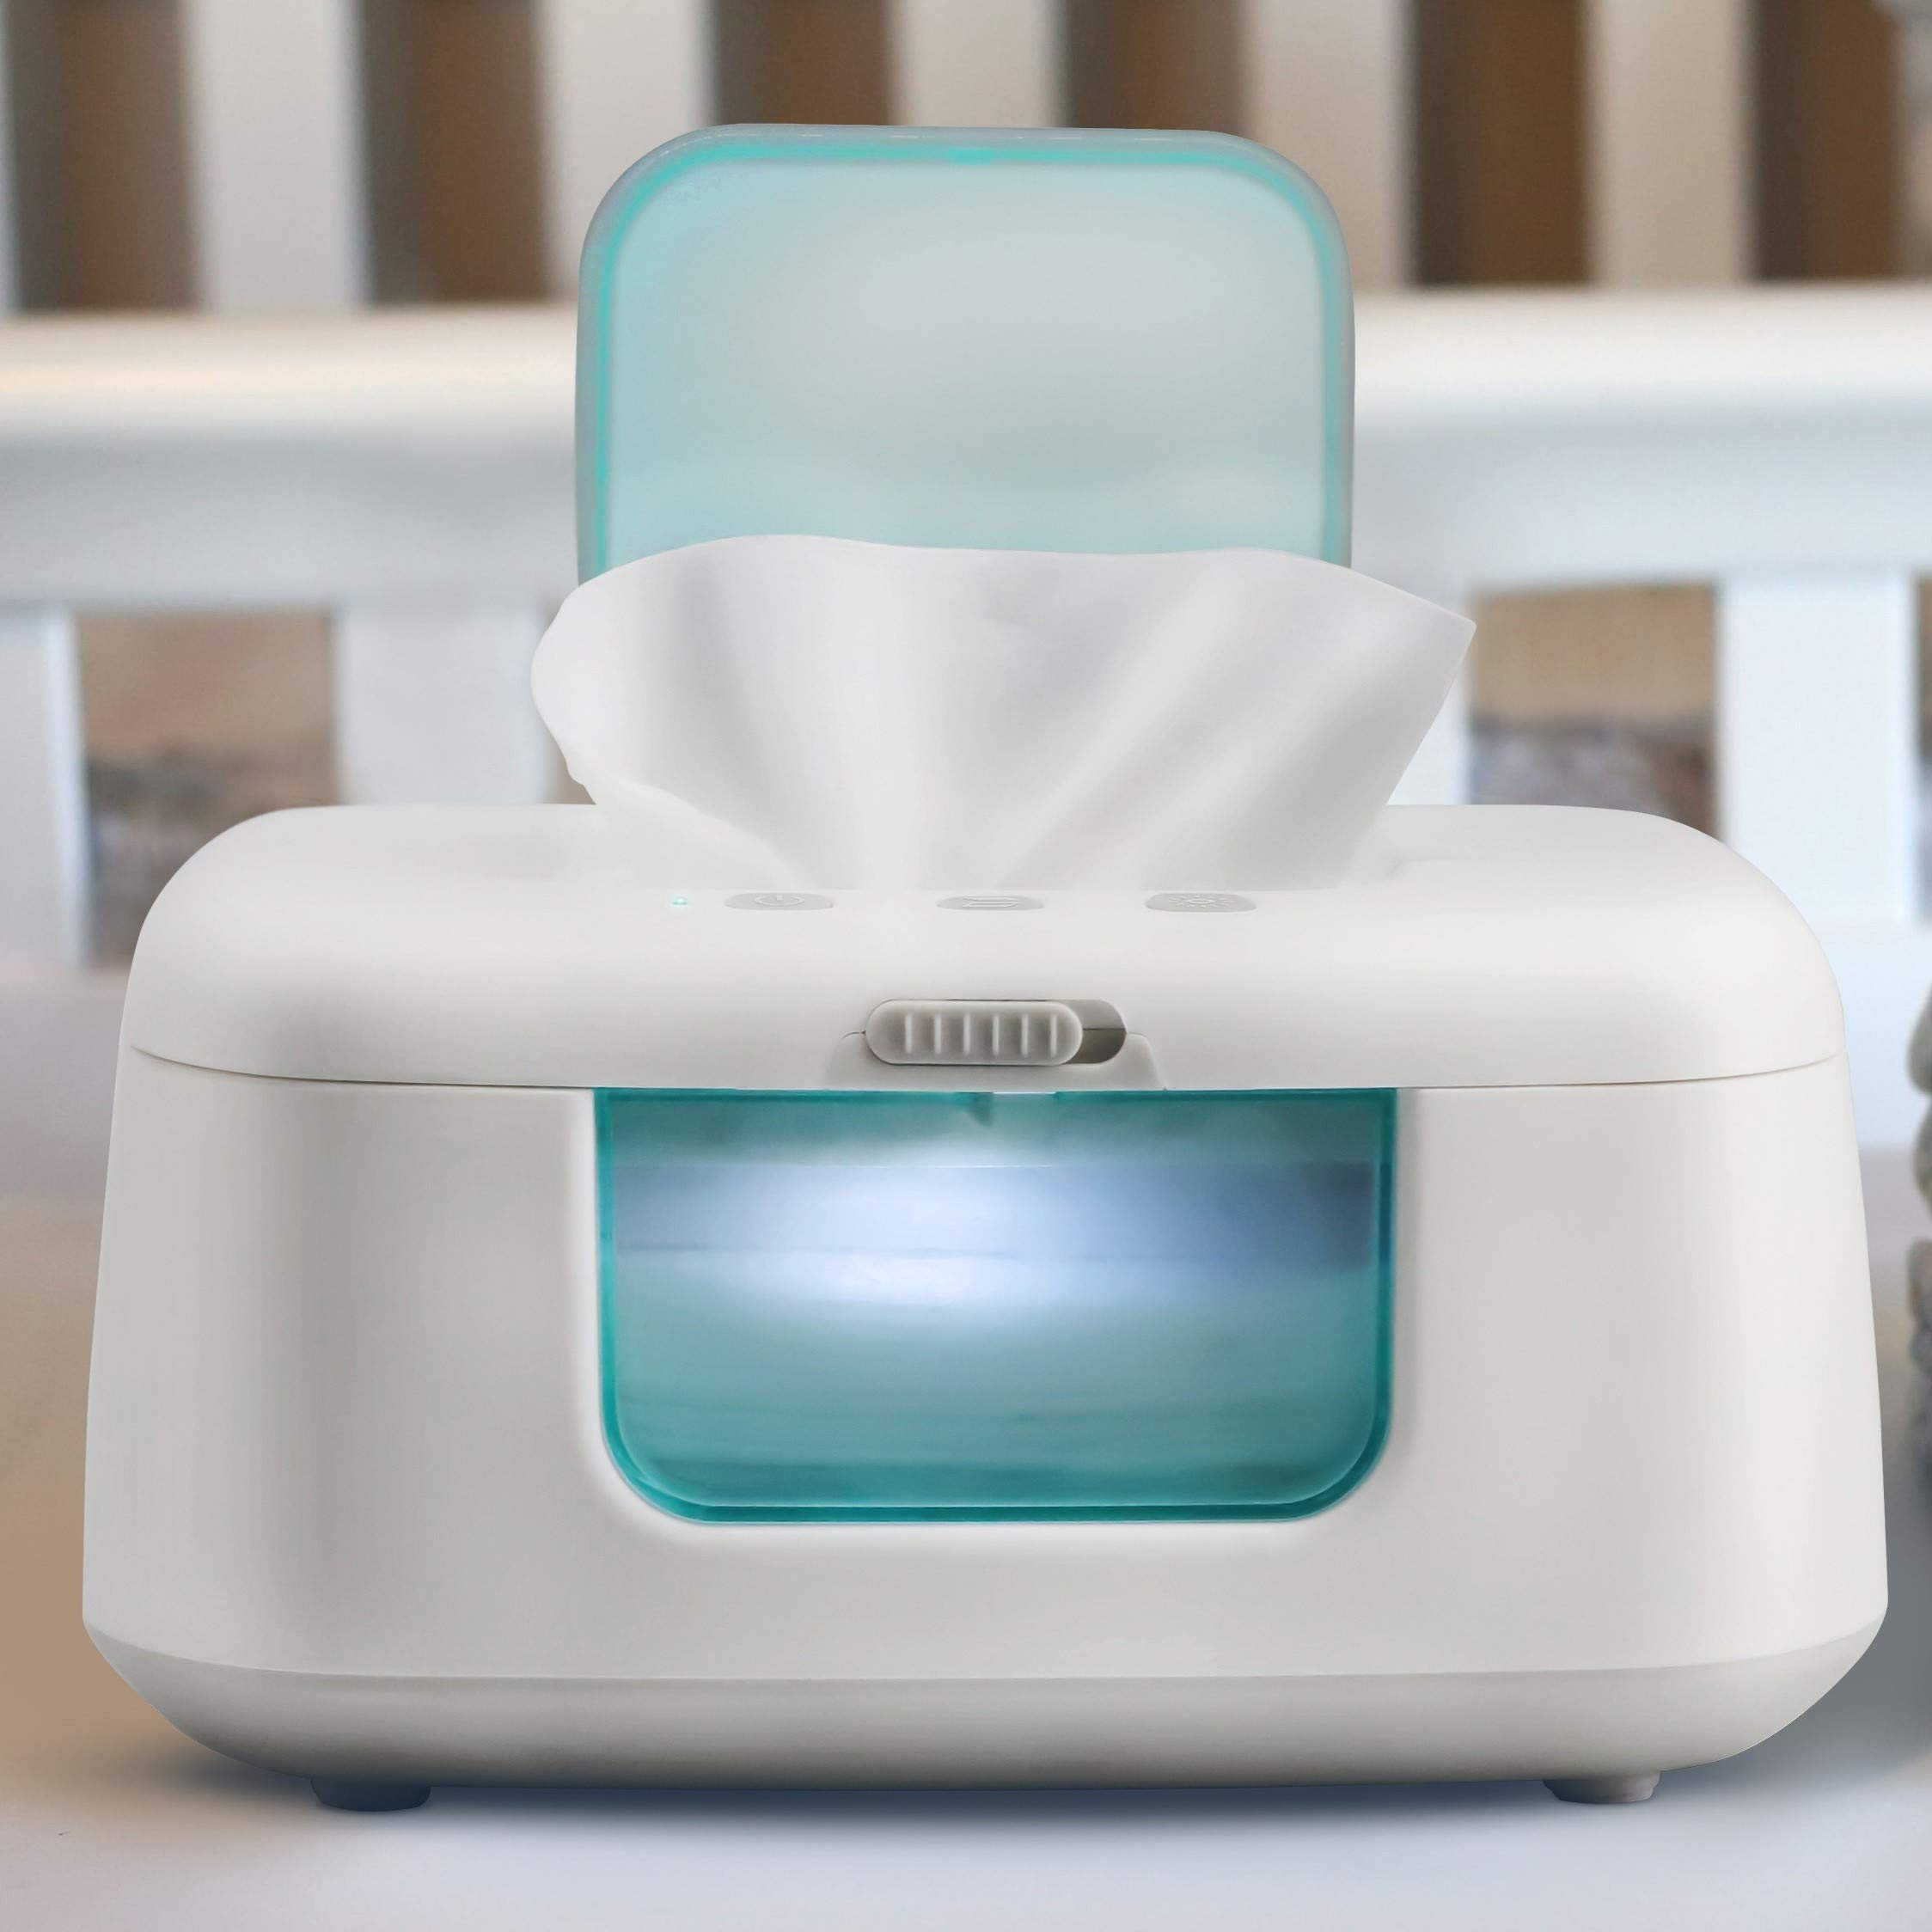 Discontinued - Modern Baby Wipe Warmer & Dispenser with Light & On/Off Switch - Jool Baby